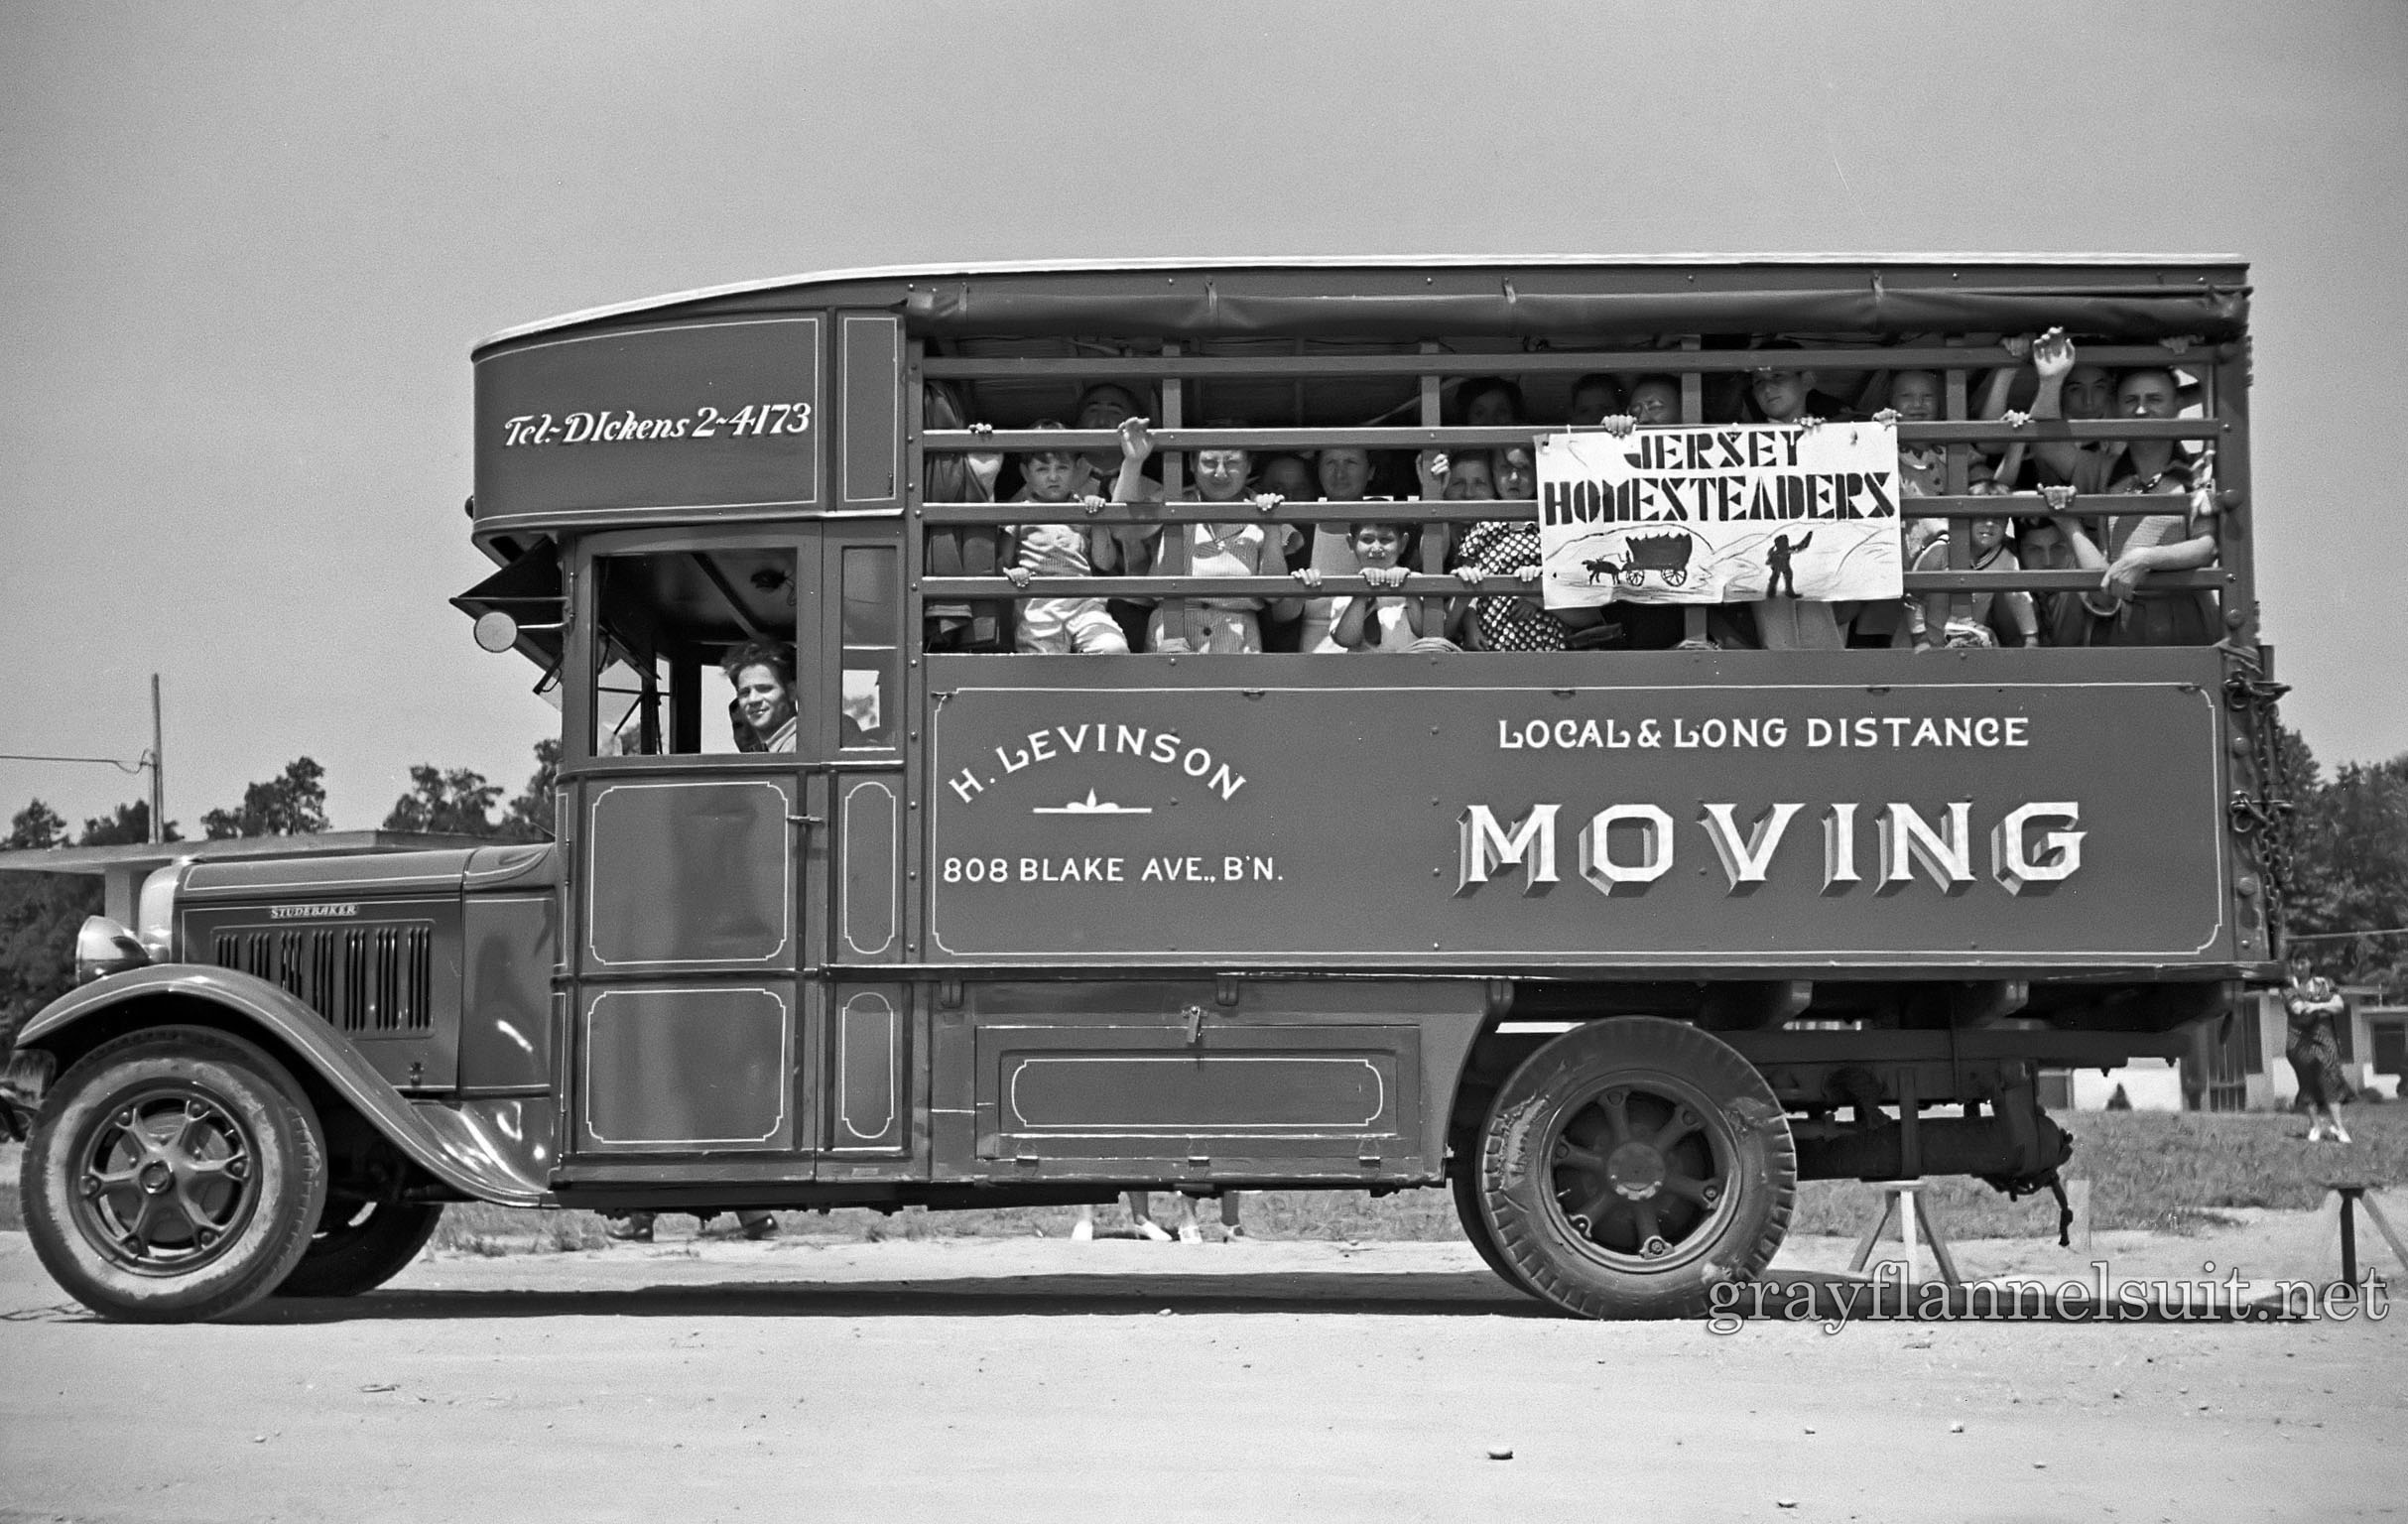 Jersey Homestead Garment Factory Bus, 1936